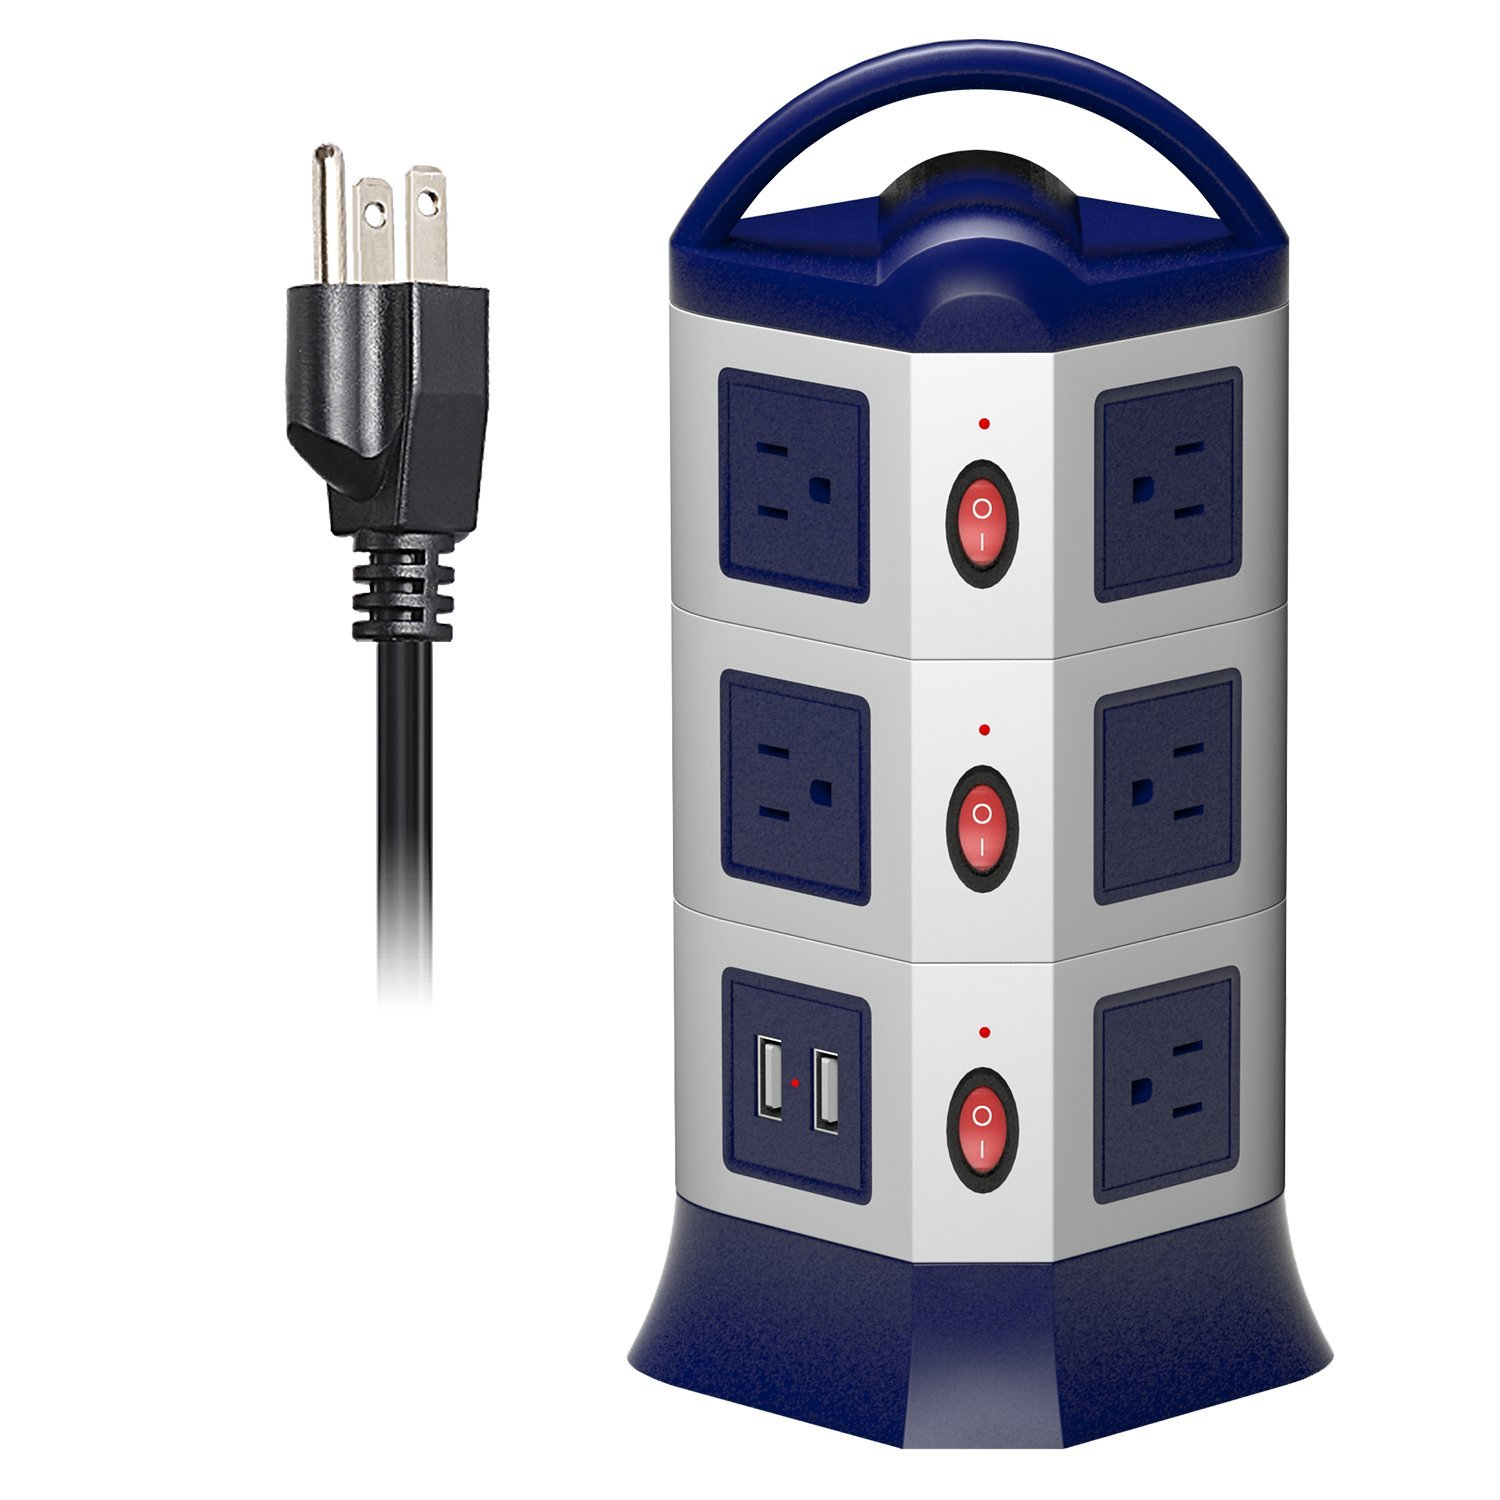 Retractable Power Cord >> Us 30 59 15 Off Power Strip Tower Surge Protector 1 8m Retractable Extension Cord Usb Socket 11 Outlets 2 Usb Ports Individual Switch Control In